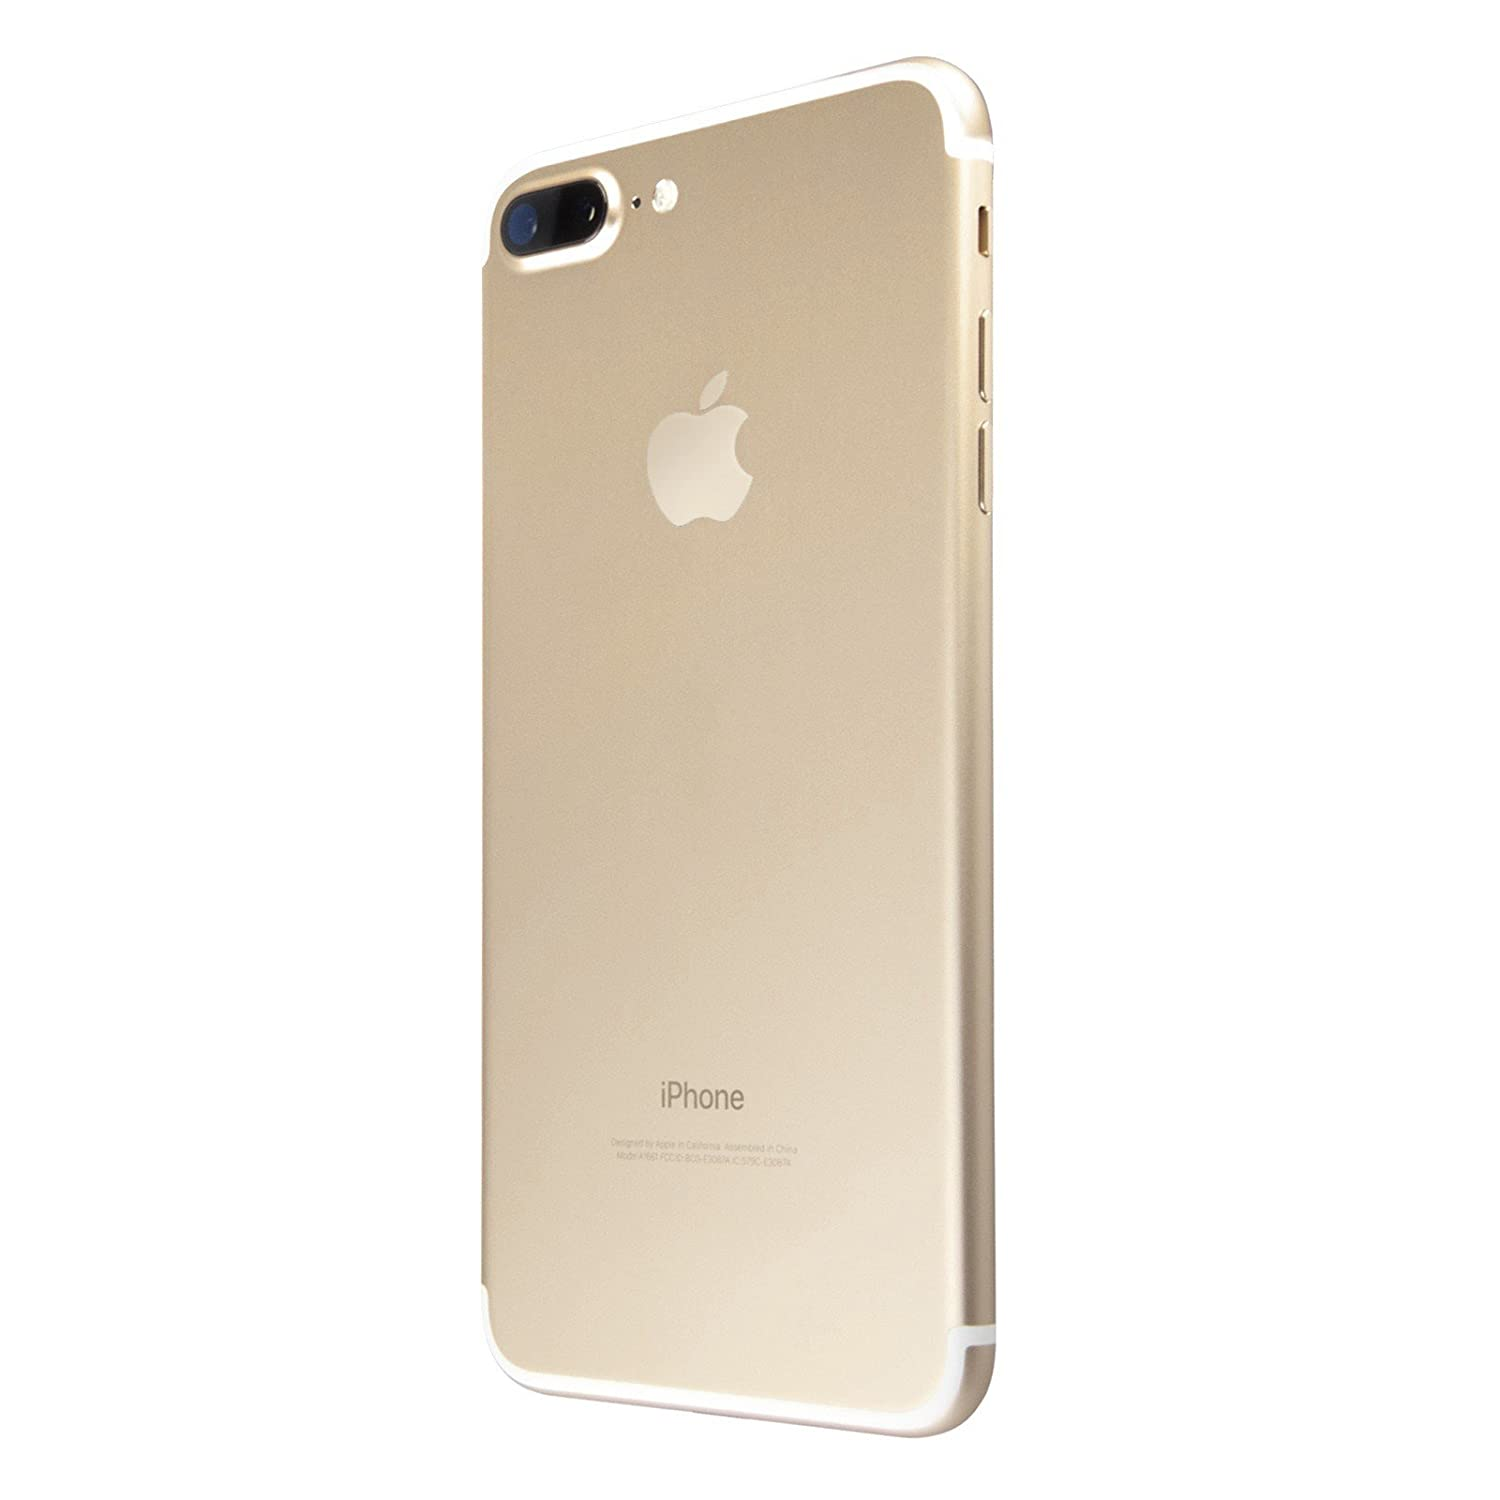 Apple Iphone 7 Plus Gsm Unlocked 128gb Gold 128 Gb Rose Refurbished Cell Phones Accessories